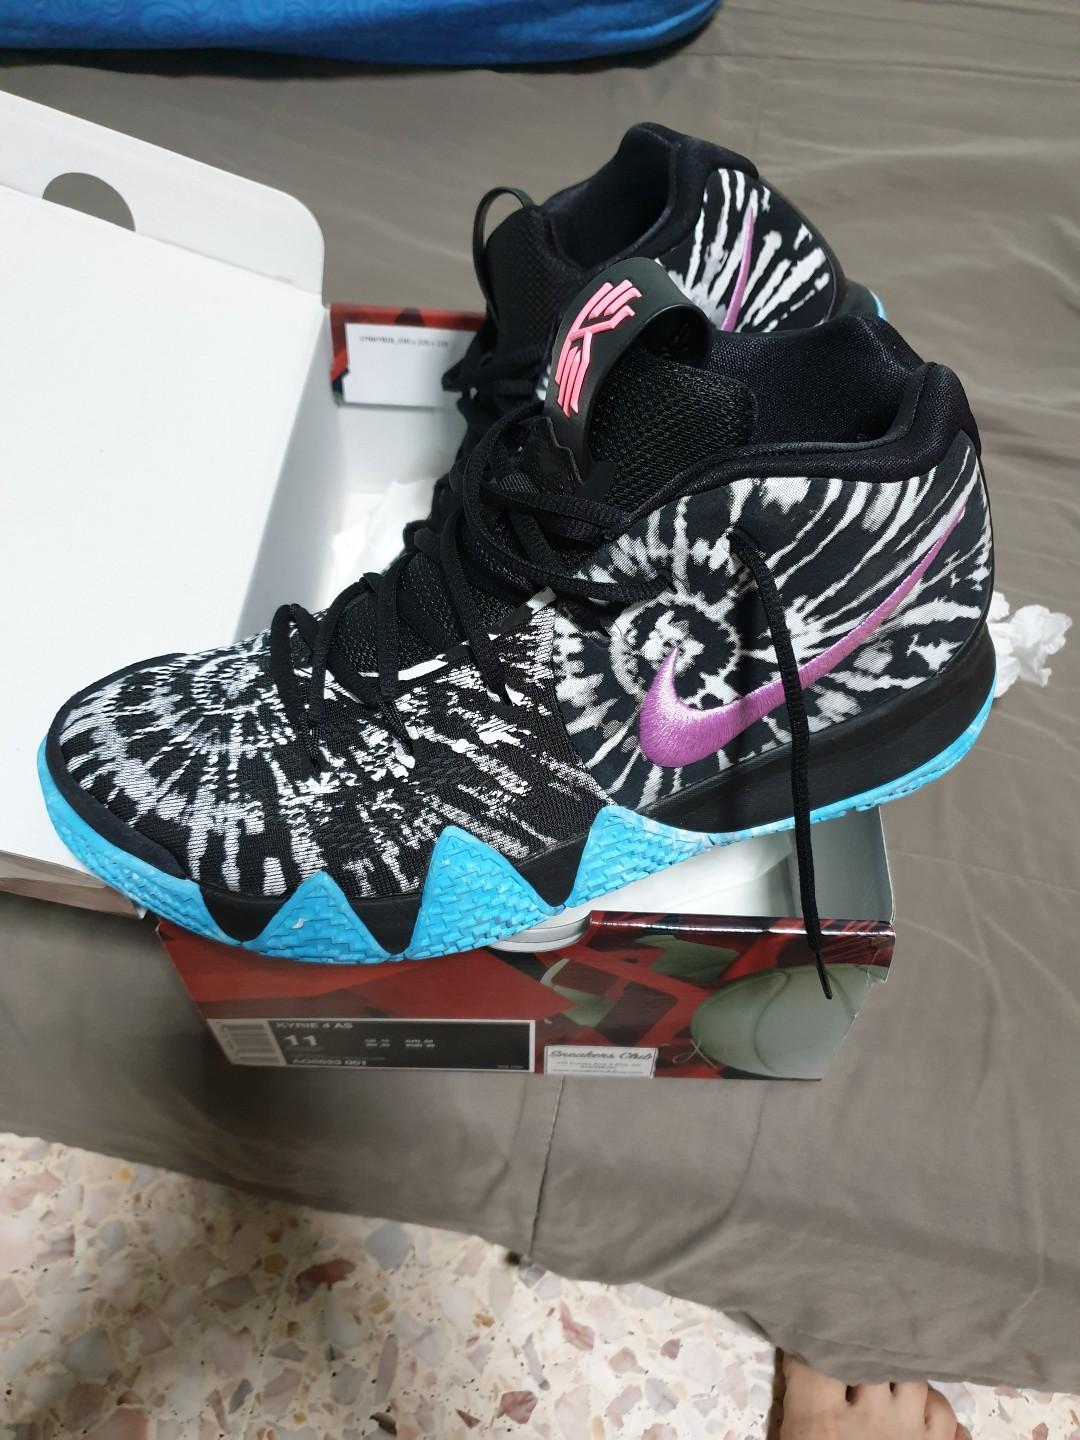 competitive price 94f06 e0fe3 Nike kyrie 4 kyrie4 all stars asg, Sports, Sports & Games ...